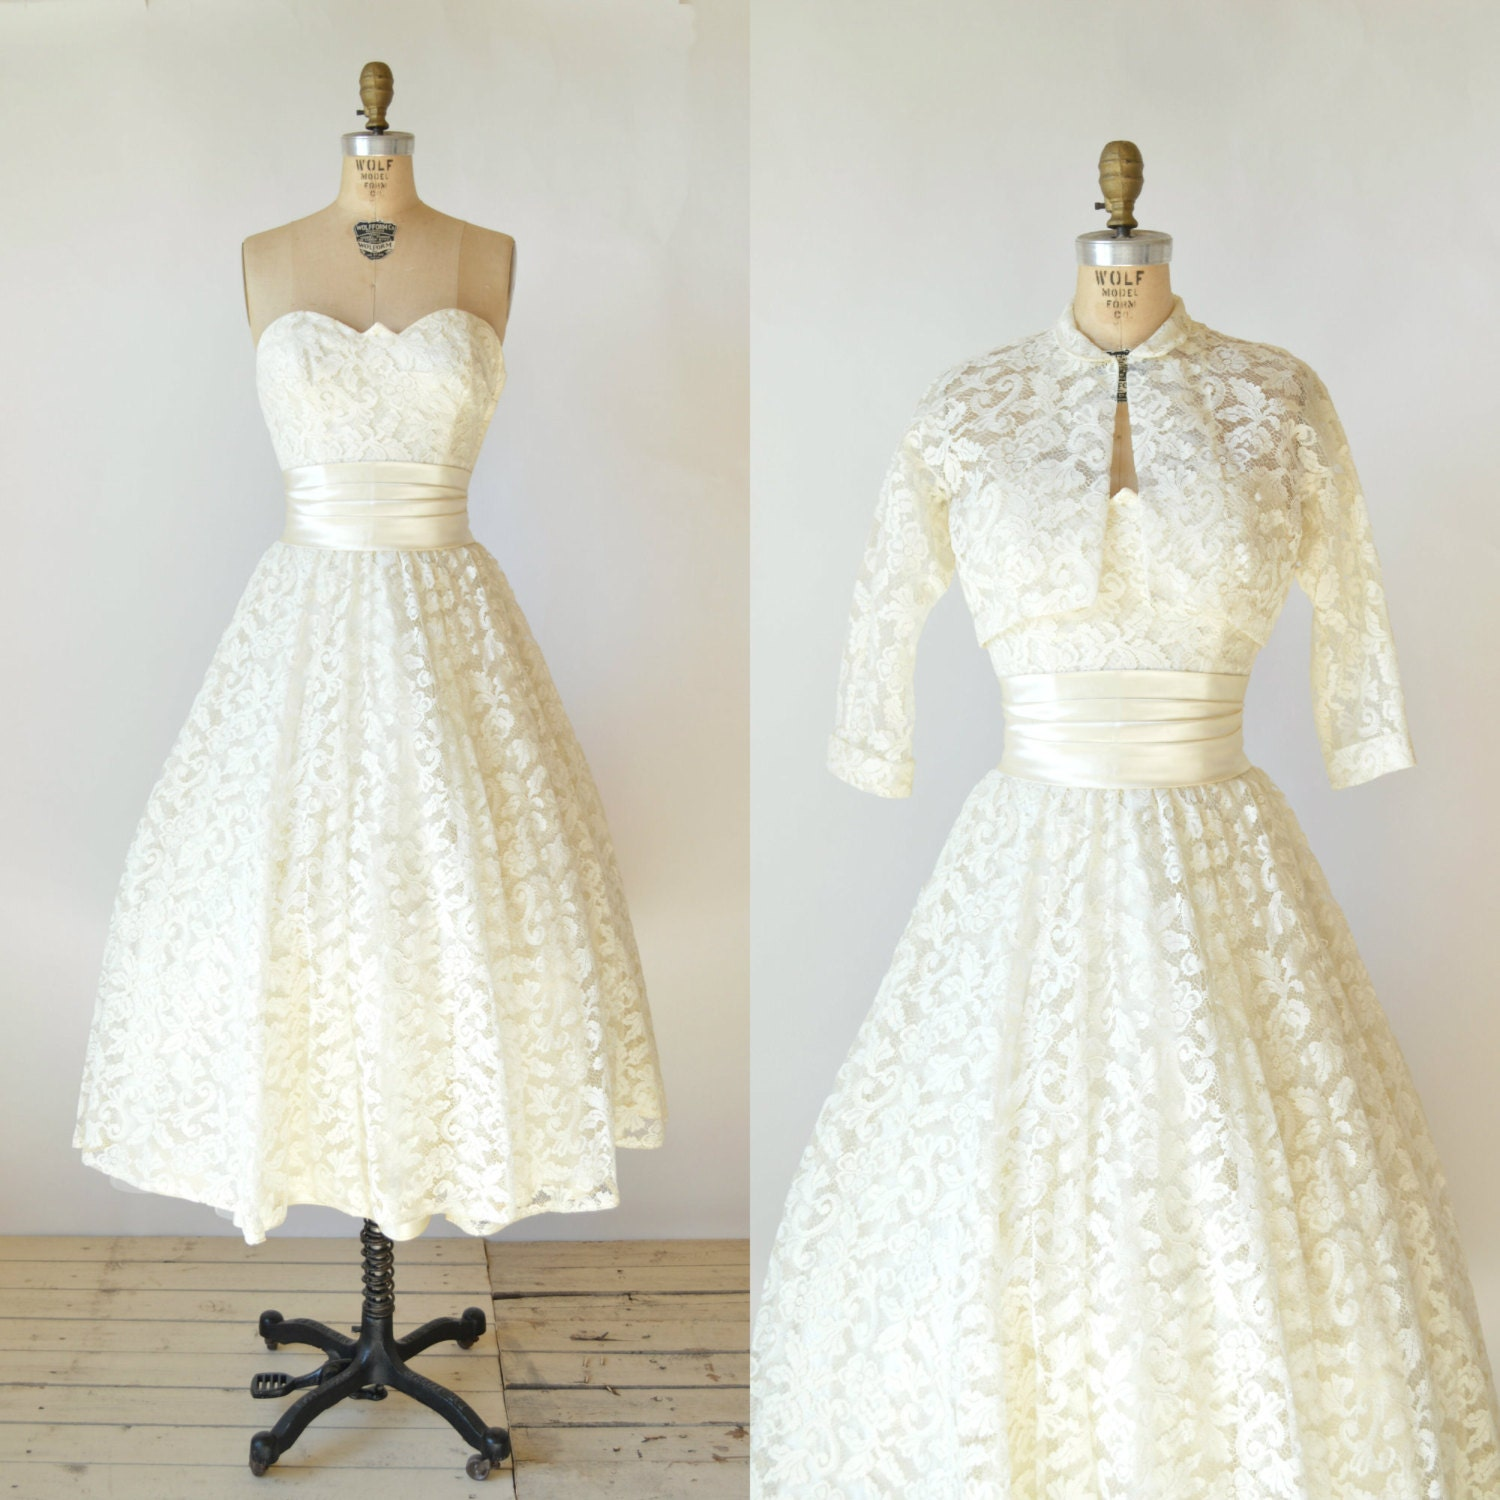 50s lace wedding dress vintage tea length wedding dress for Vintage wedding dresses tea length